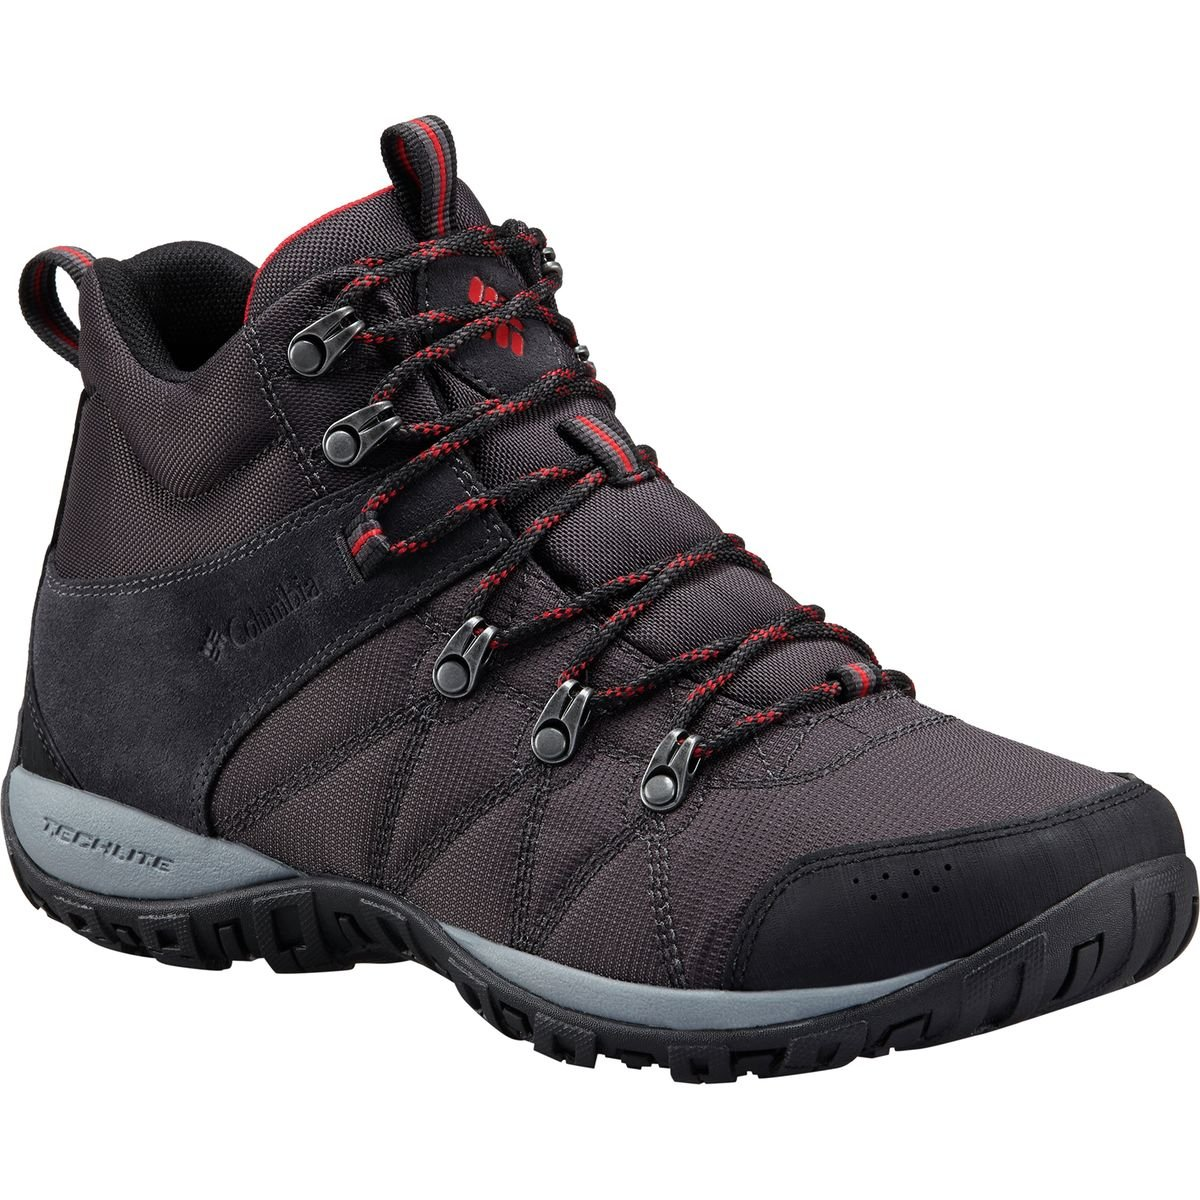 Columbia Men's Peakfreak Venture Mid LT Hiking Boot, Shark, Mountain Red, 7 Regular US